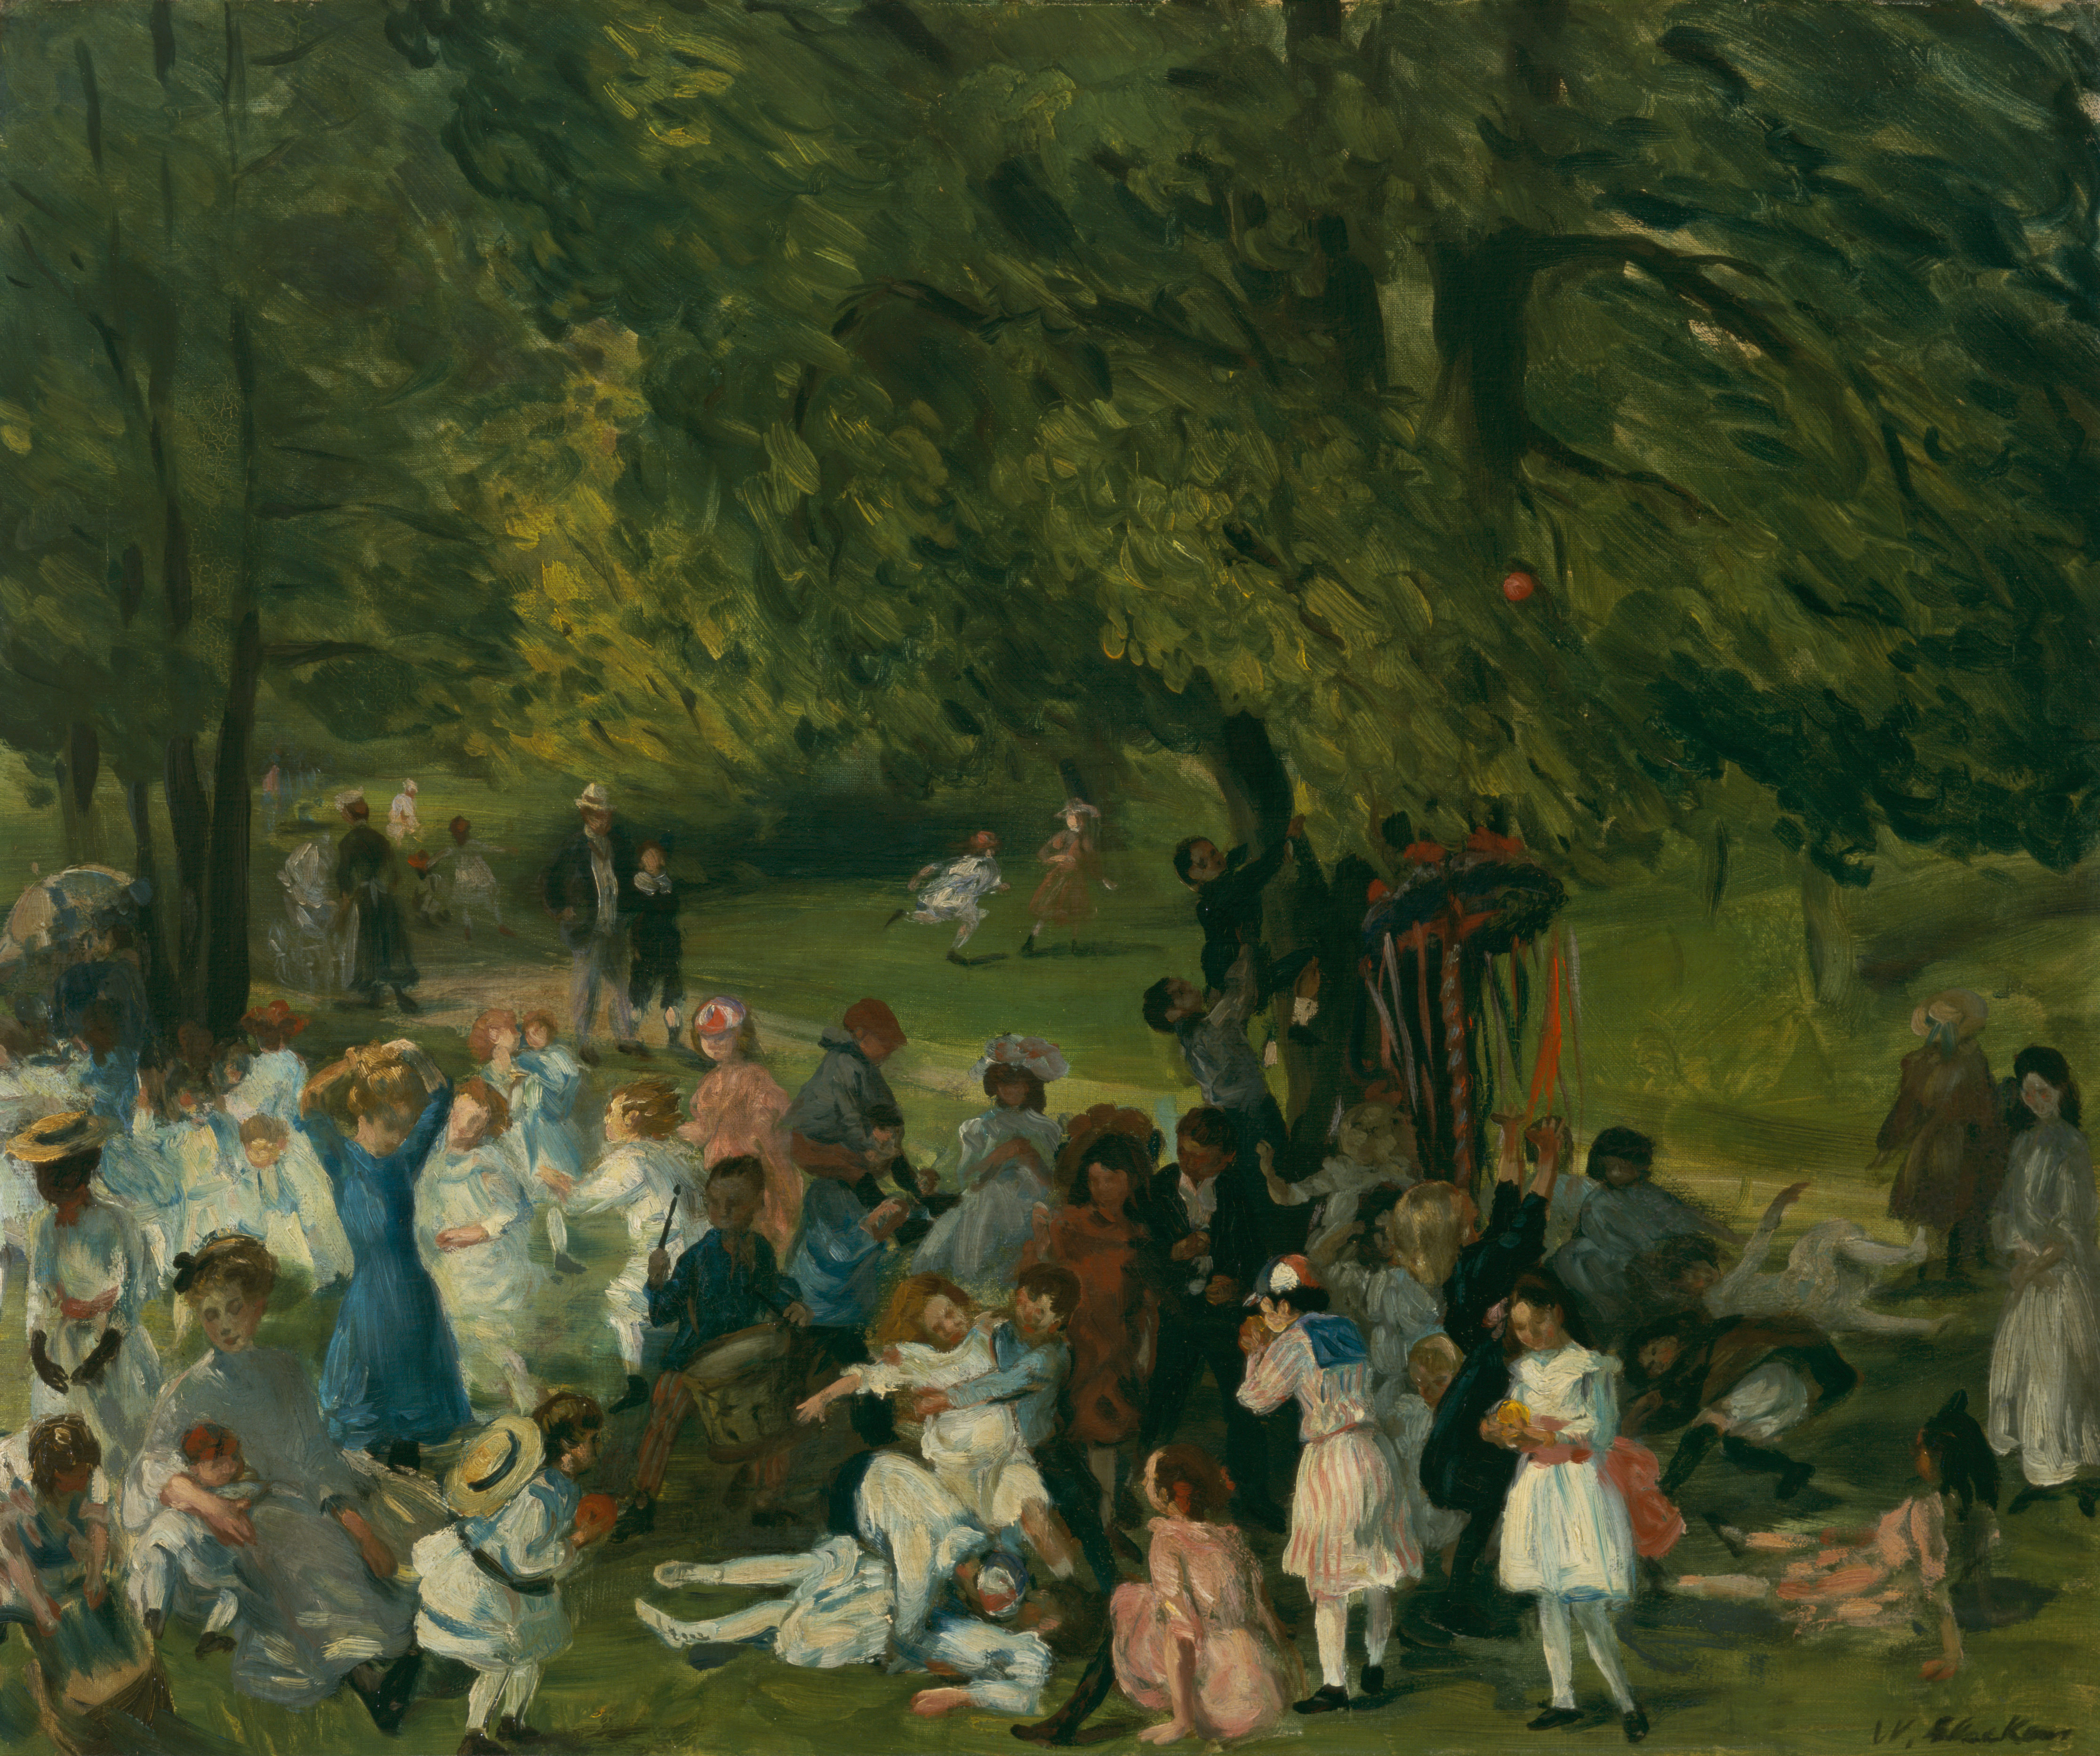 May Day, Central Park by William James Glackens